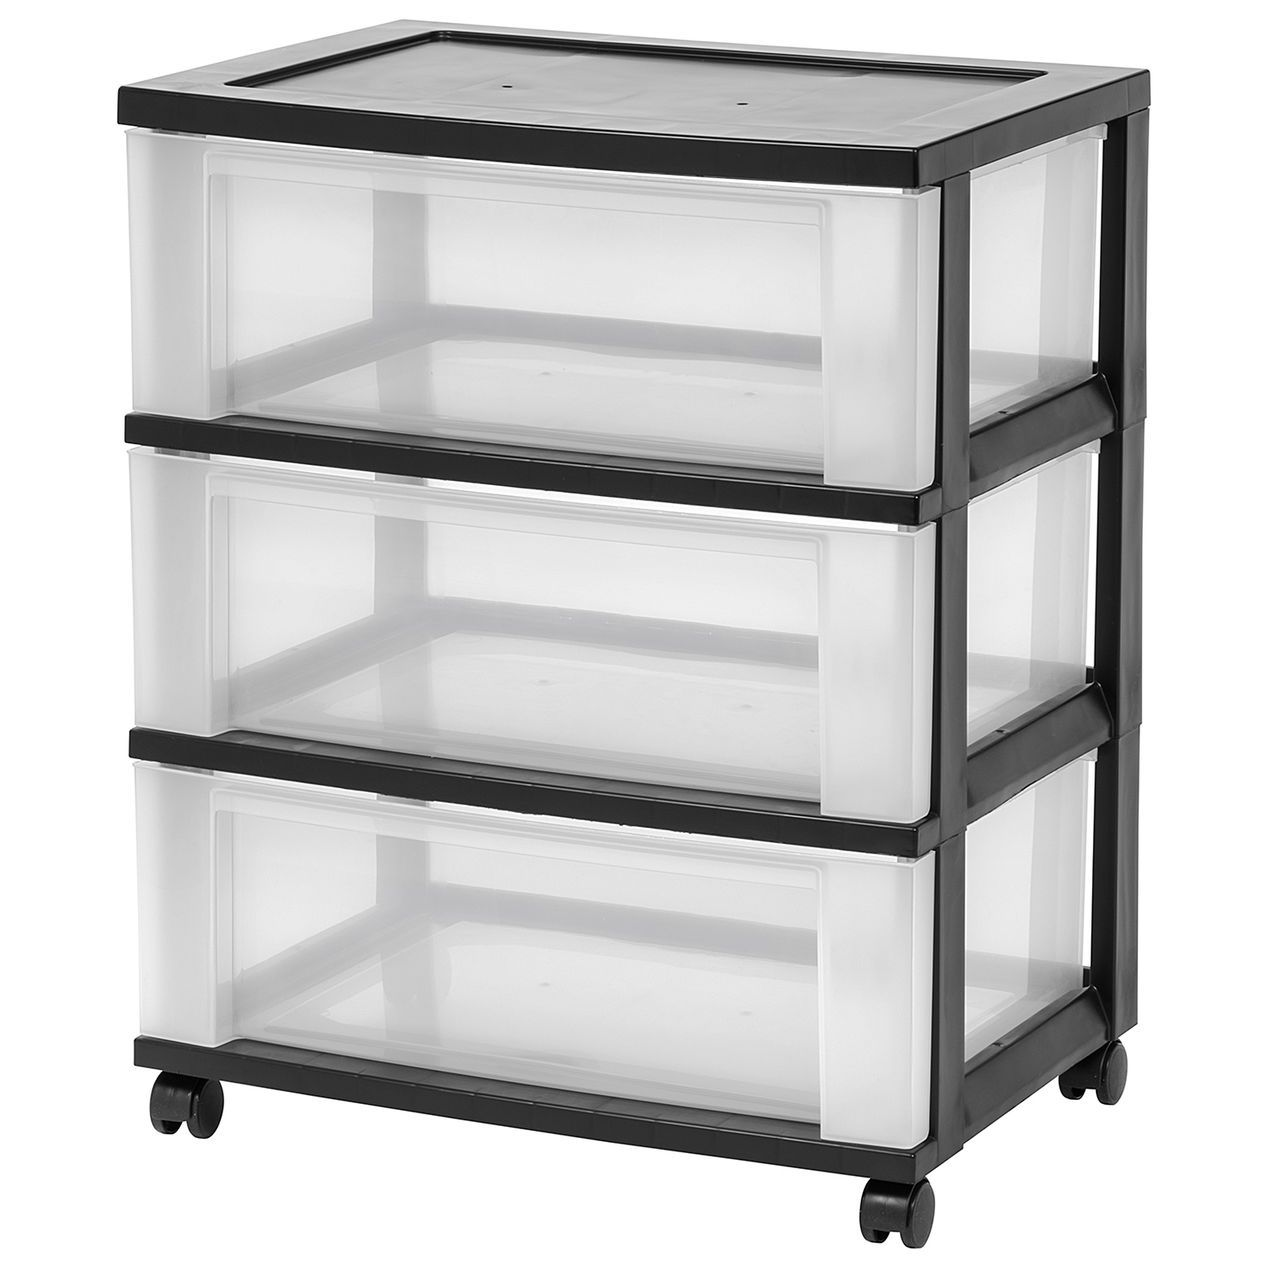 healthcare product treatment series capsa drawers cart storage prod drawer vintage with